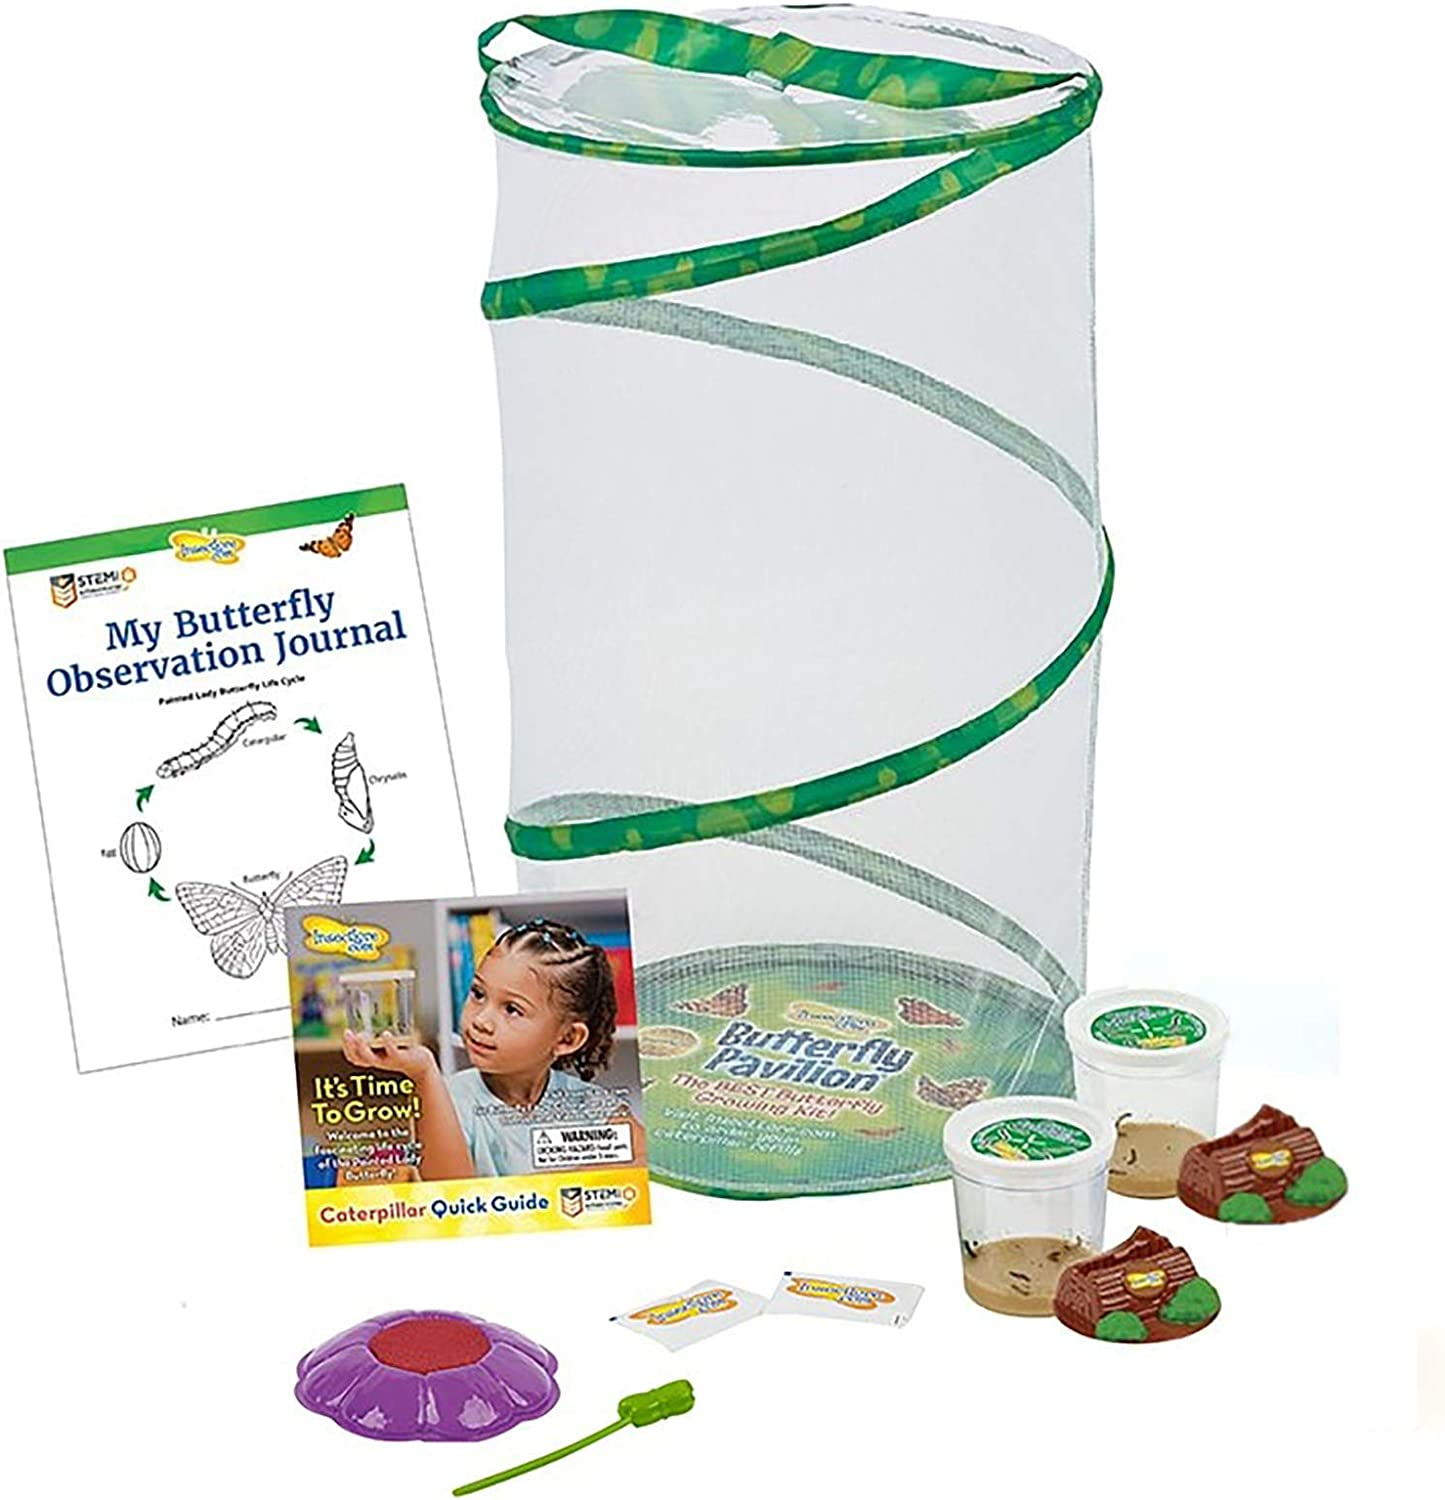 Insect Lore Butterfly Pavilion: Pavilion Habitat and Two Live Cups of Caterpillars with STEM Butterfly Journal – Life Science & STEM Education – Butterfly Kit